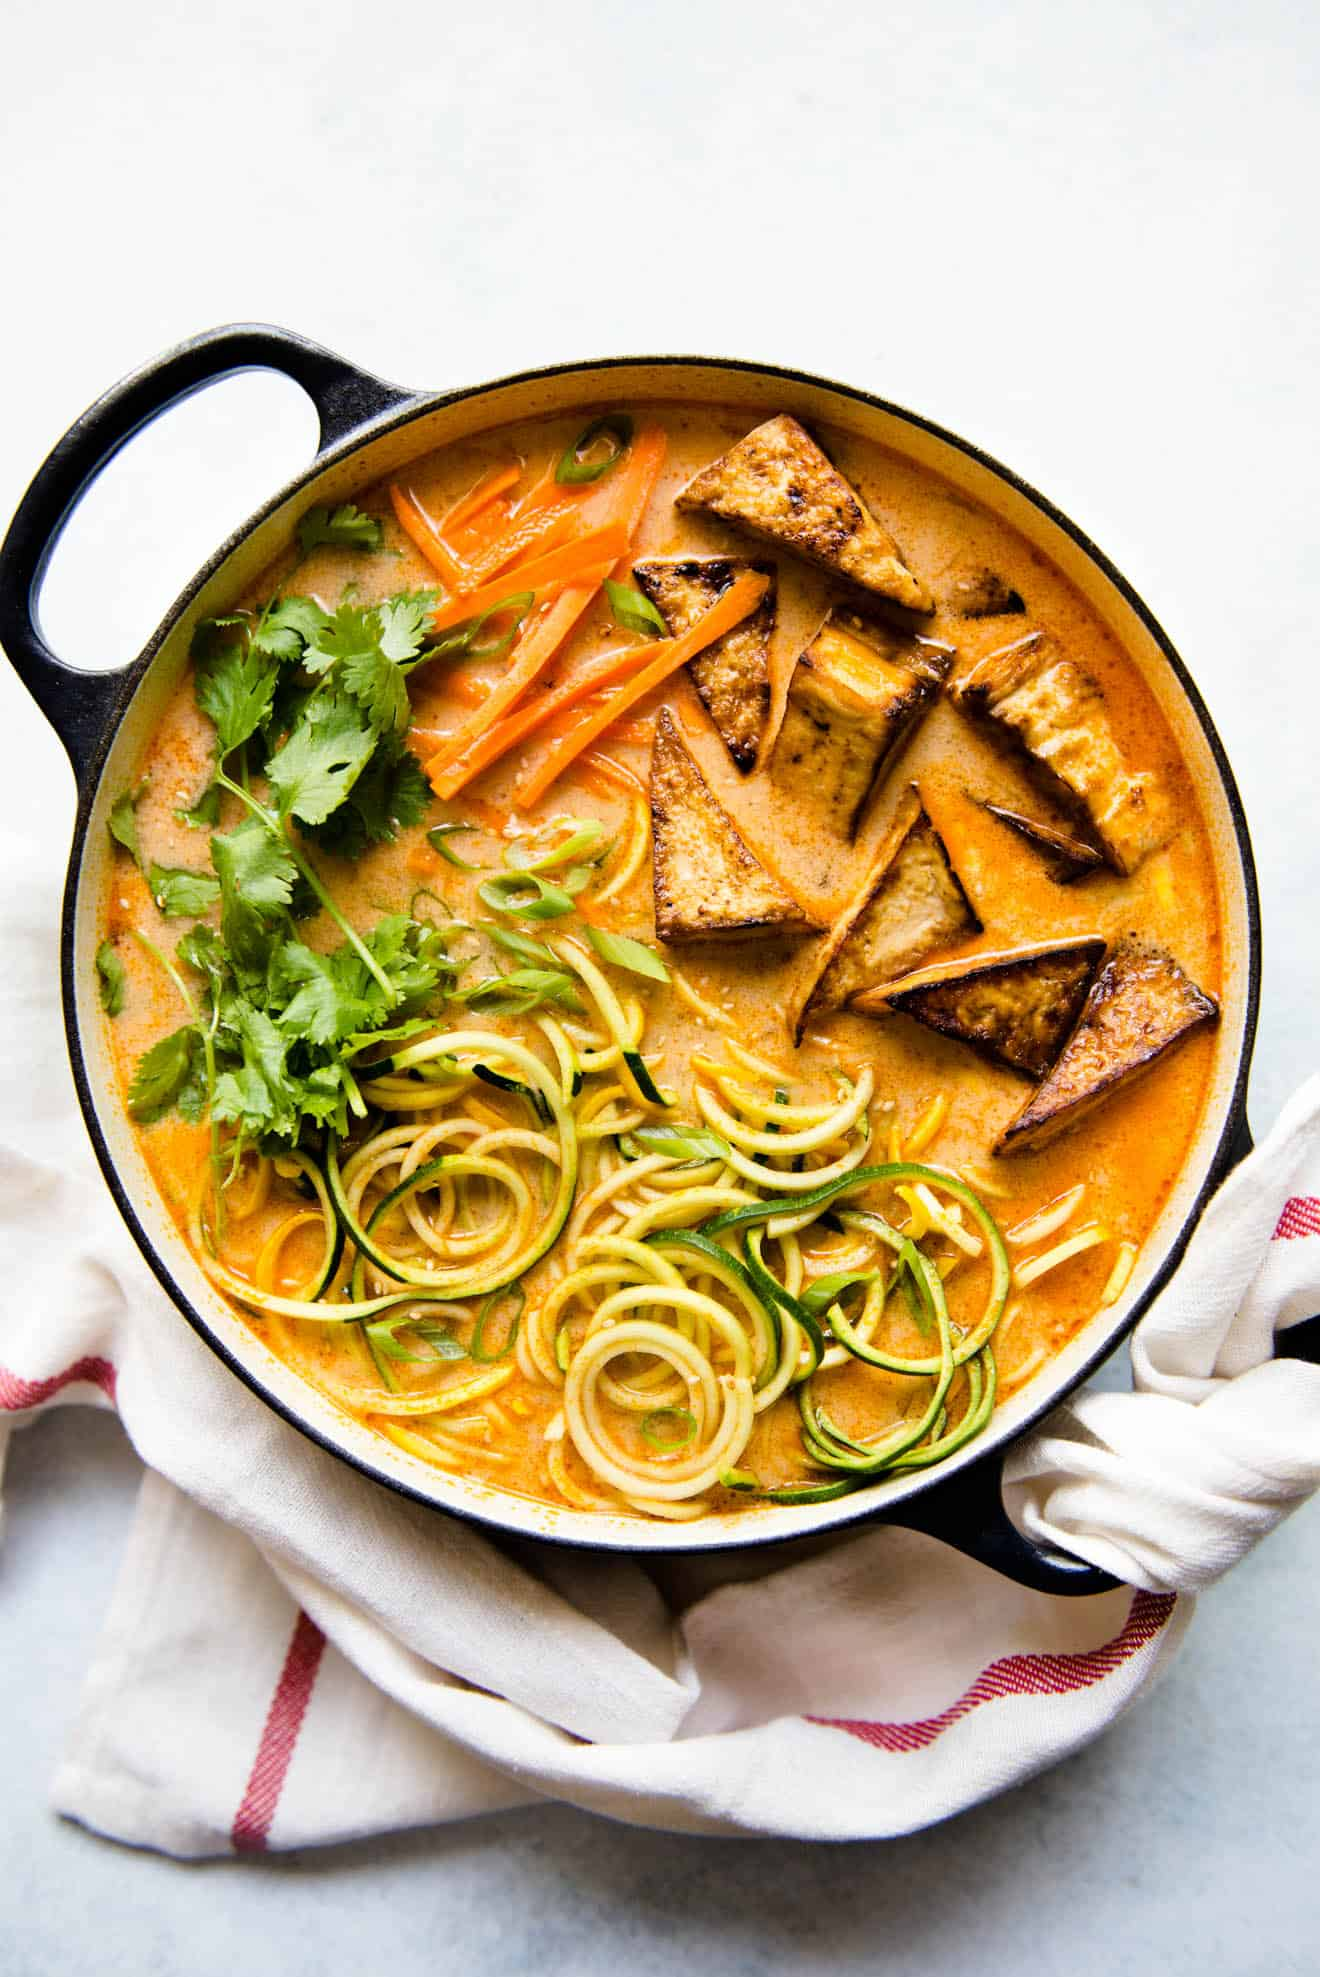 Zucchini Noodles Tomato Coconut Broth and Pan-Seared Tofu - a delicious vegan meal for weeknights